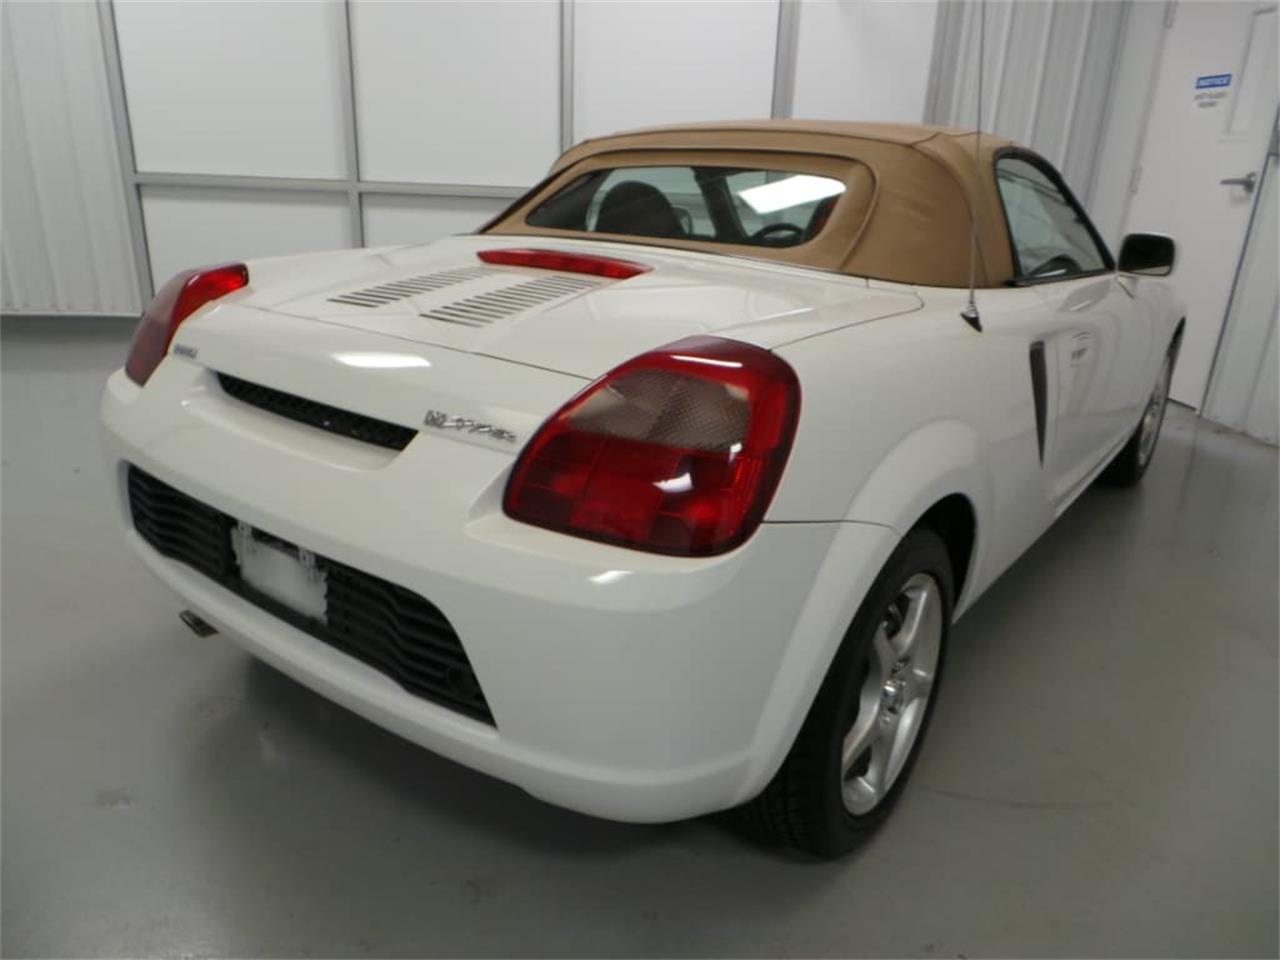 Large Picture of '01 Toyota MR2 Spyder Offered by Duncan Imports & Classic Cars - JL89